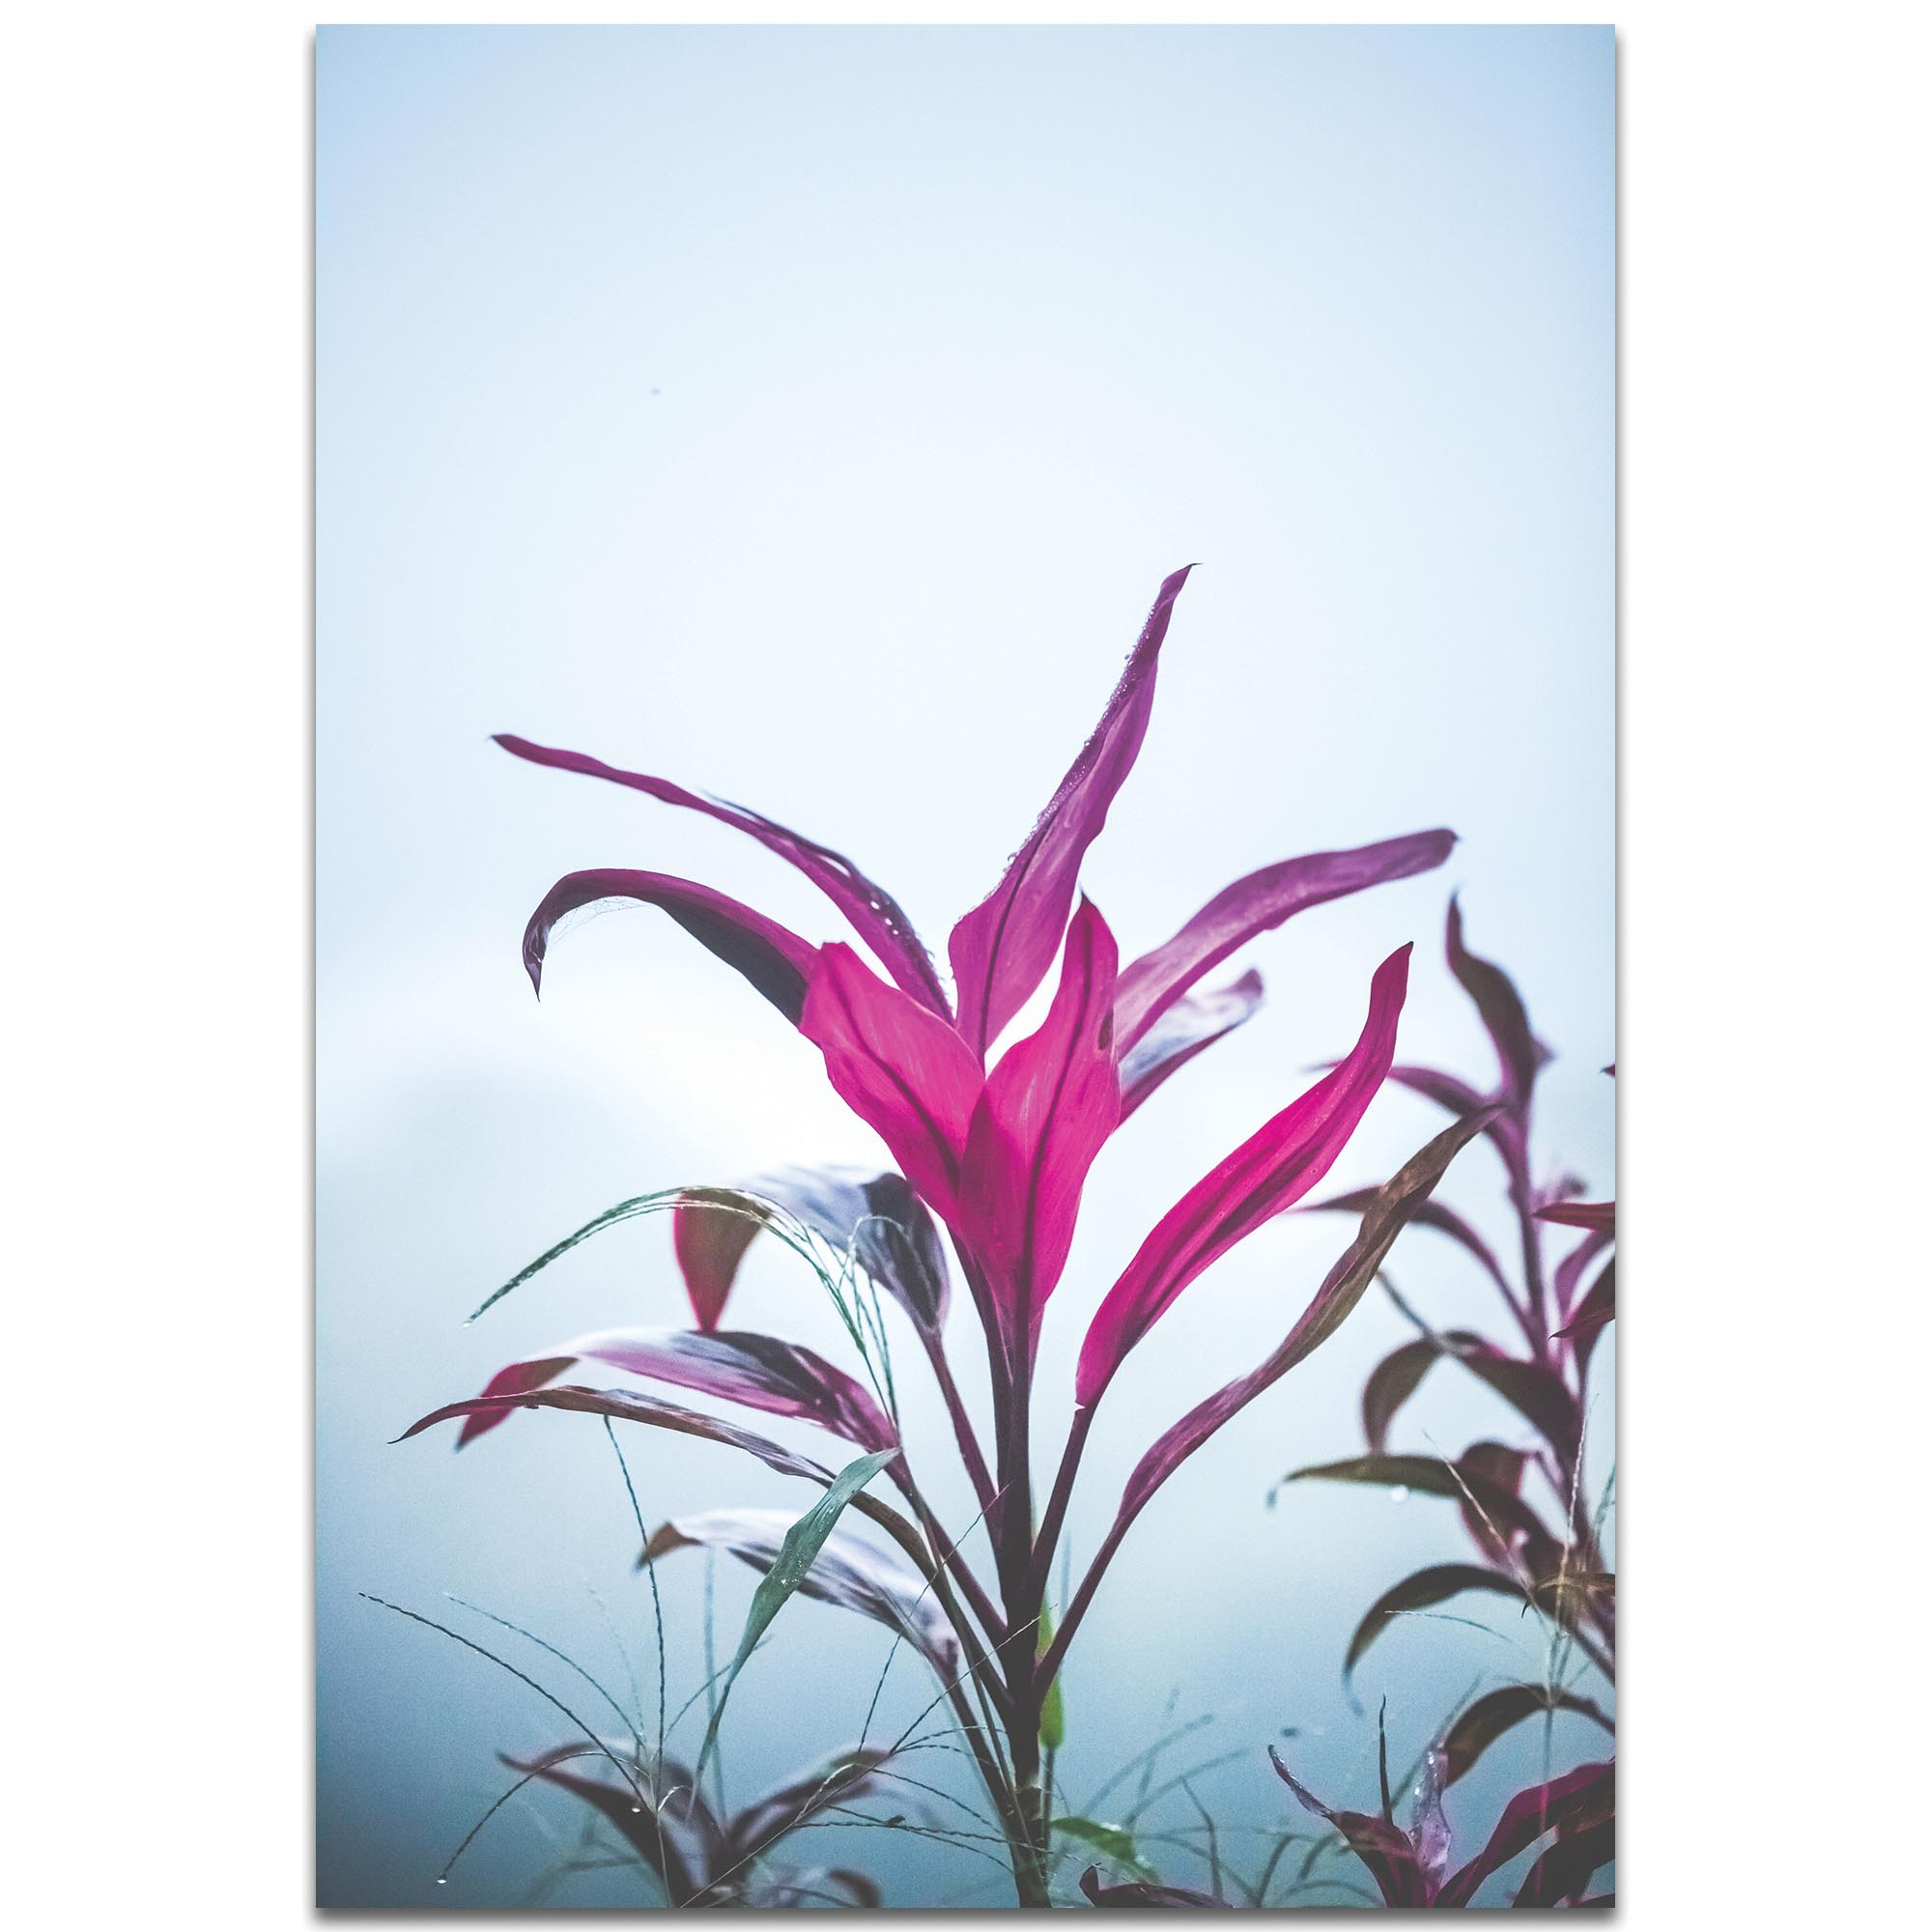 Nature Photography 'Magenta Leaves' - Flower Blossom Art on Metal or Plexiglass